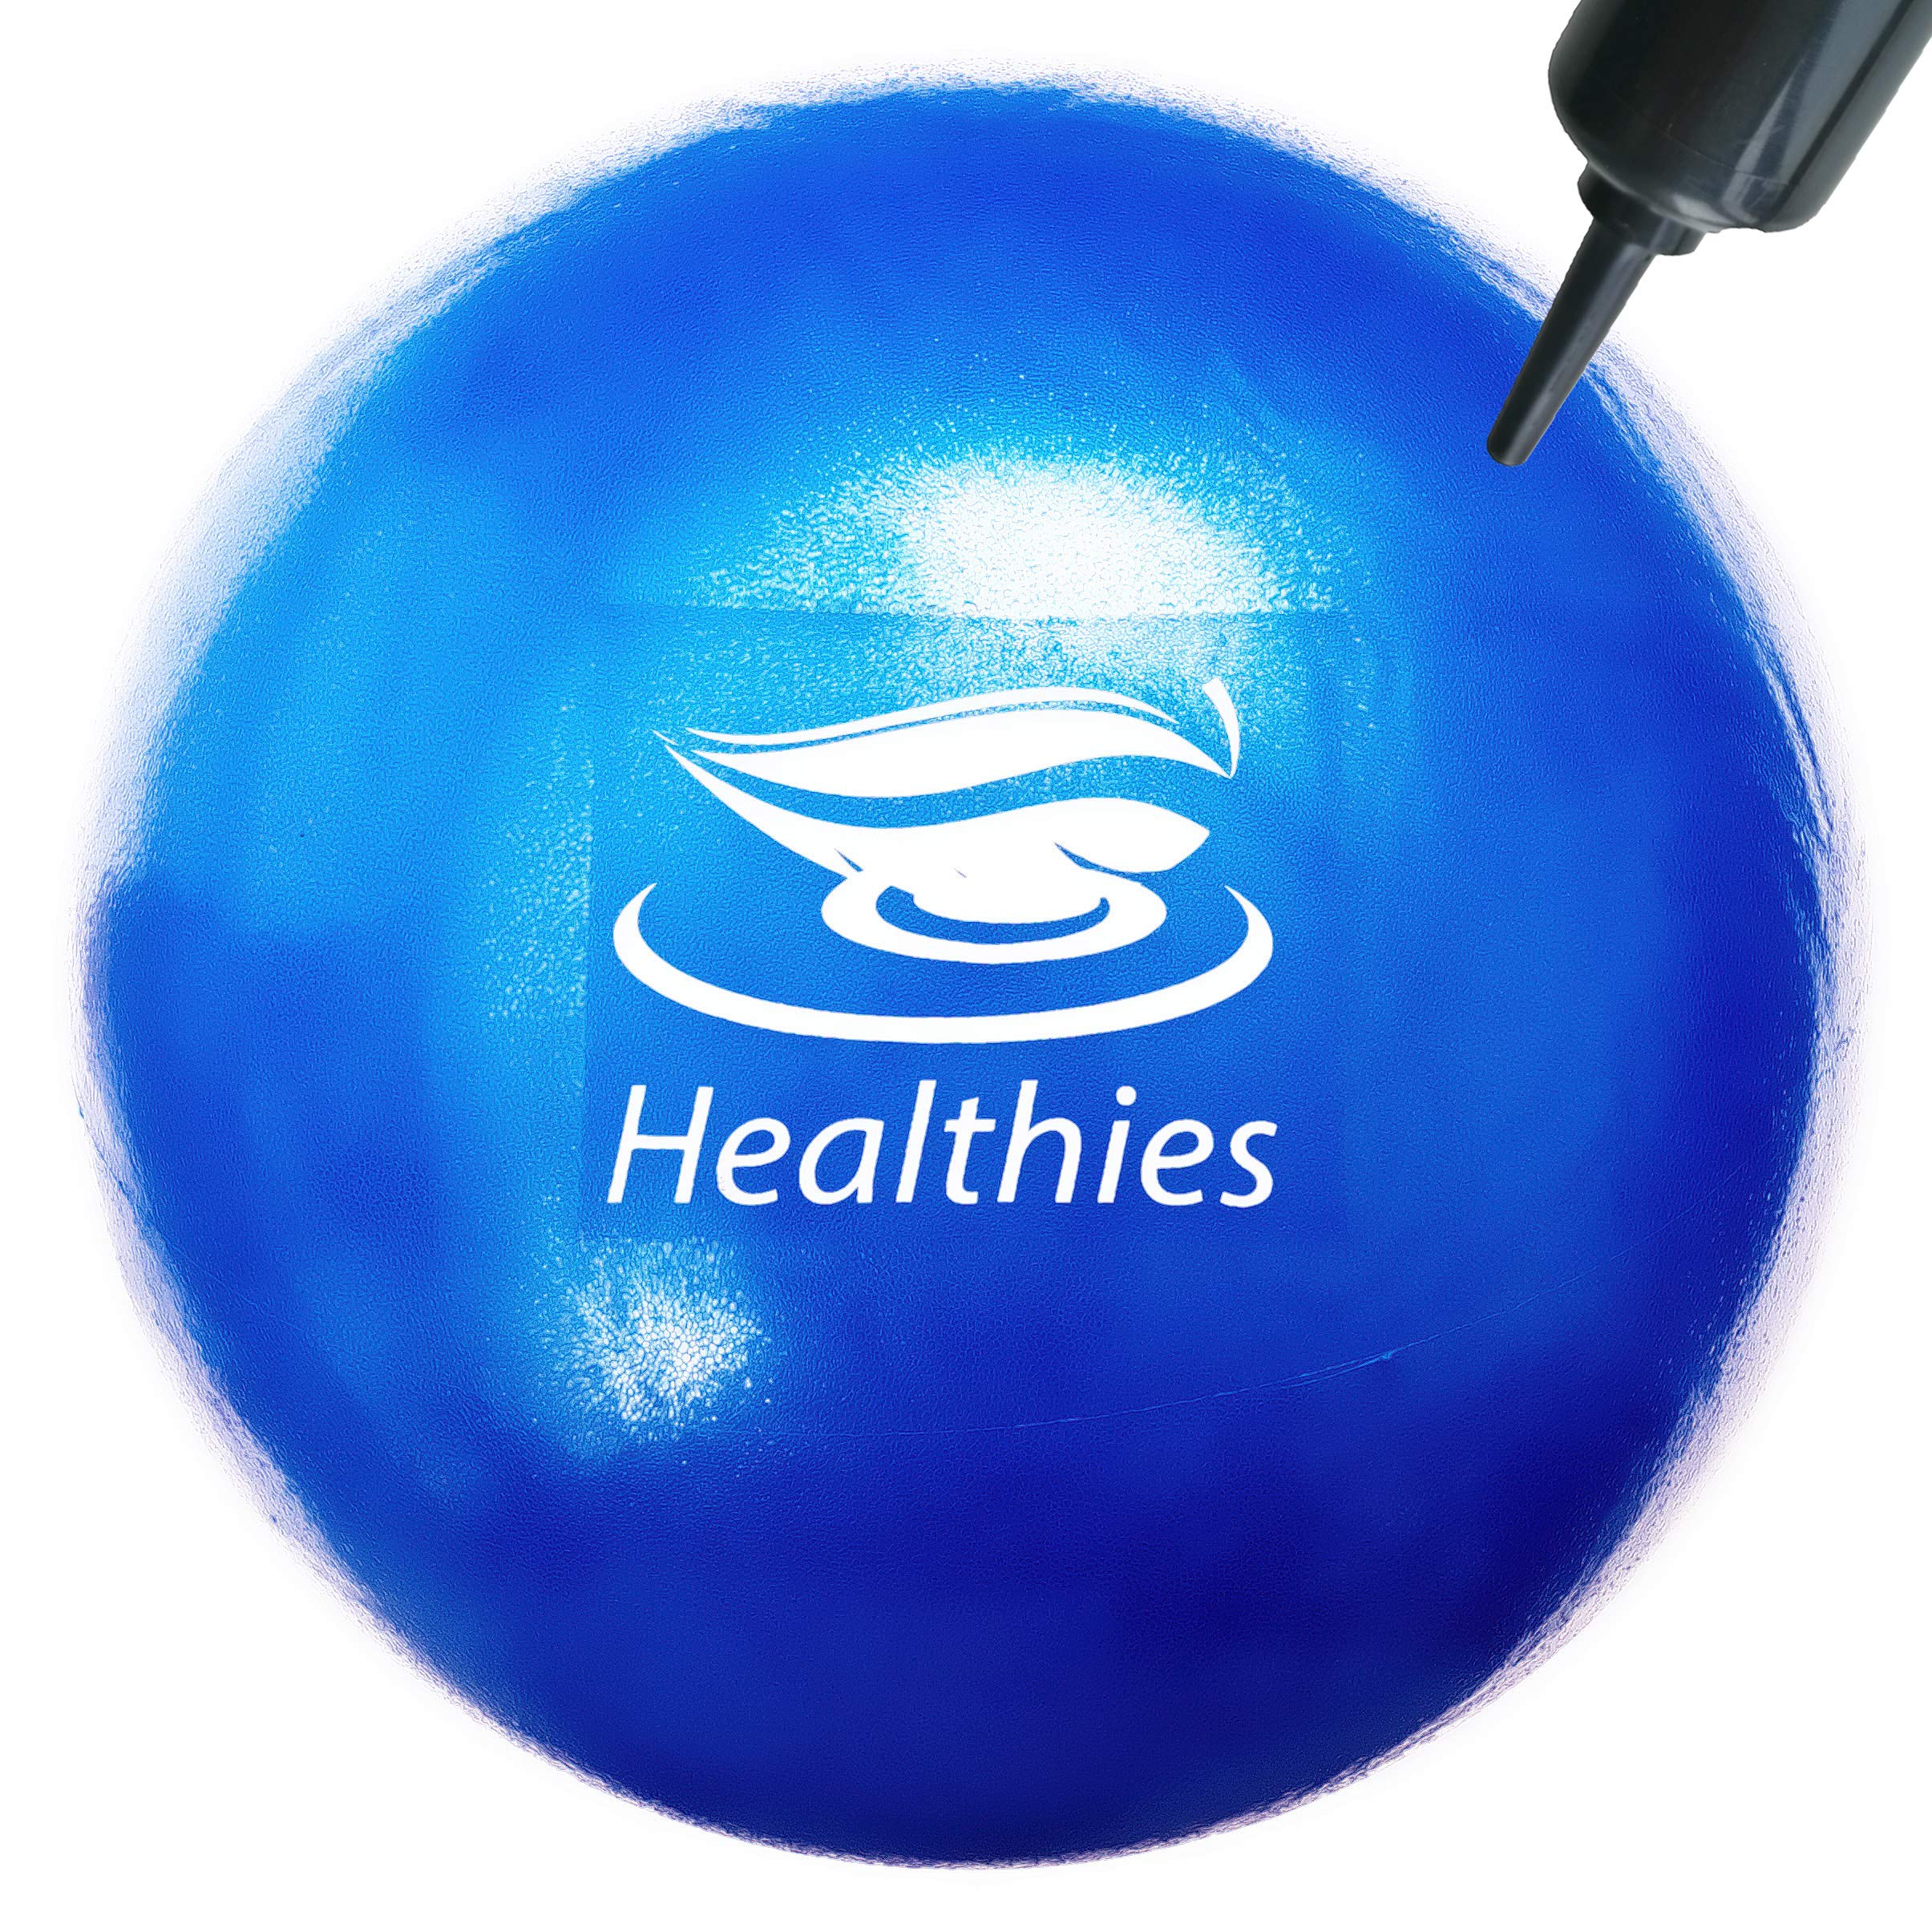 Healthies Small Exercise Ball - 9 Inch Fitness Ball for Physical Therapy, Pilates, Yoga, Barre, Stability Ball, Shoulder and Core Training (with Pump)